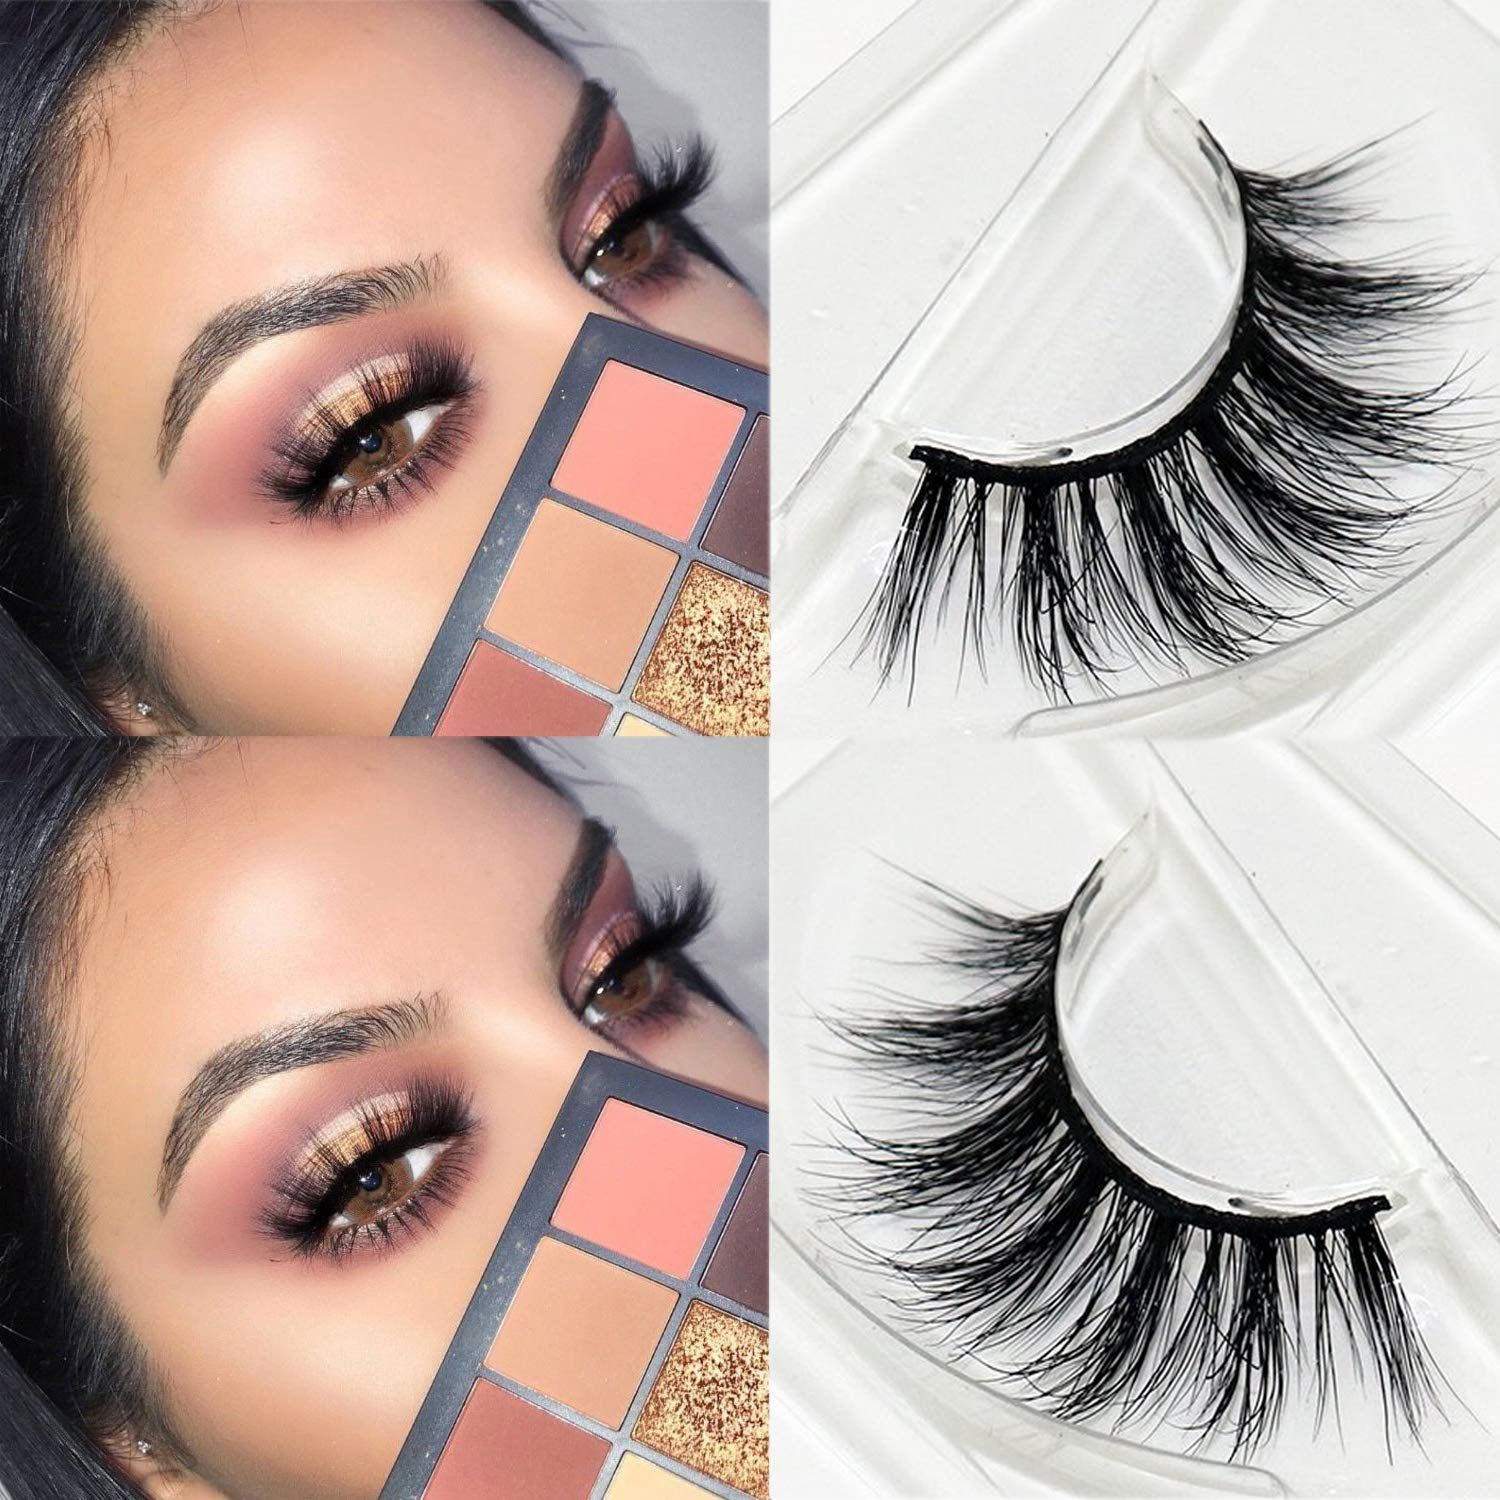 54367af2891 Amazon.com : Veleasha Lashes Top Quality 3D Mink Eyelashes 100% Hand-made  Natural Long Cross Fake Lashes for Makeup 1 Pair Pack (No.200) : Beauty